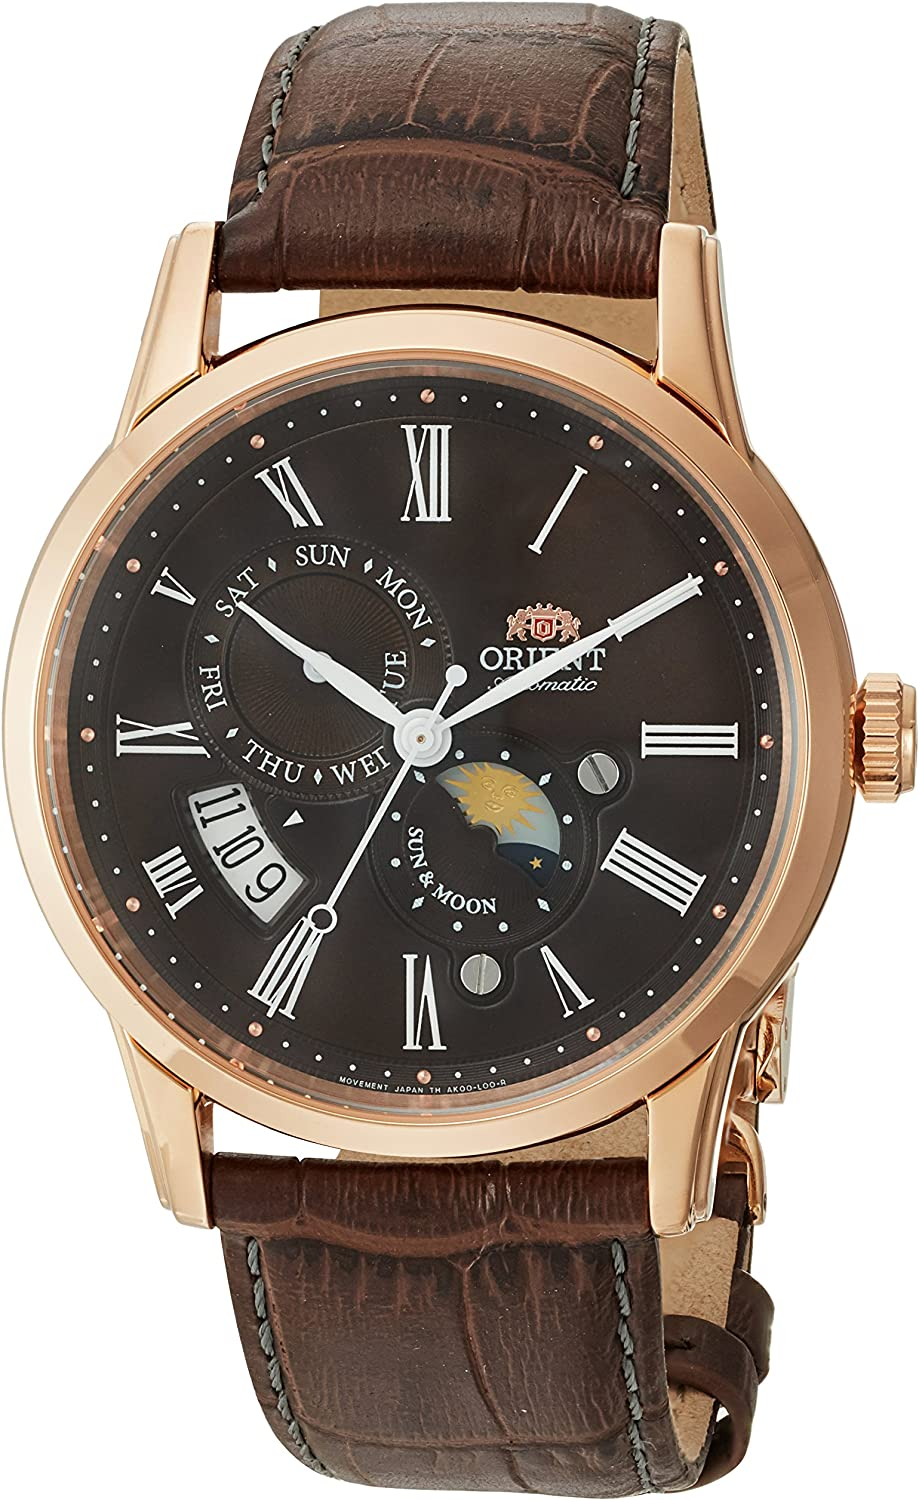 Orient Men s Sun and Moon Version 3 Stainless Steel Japanese-Automatic Watch with Leather Calfskin Strap, Brown, 22 Model FAK00003T0